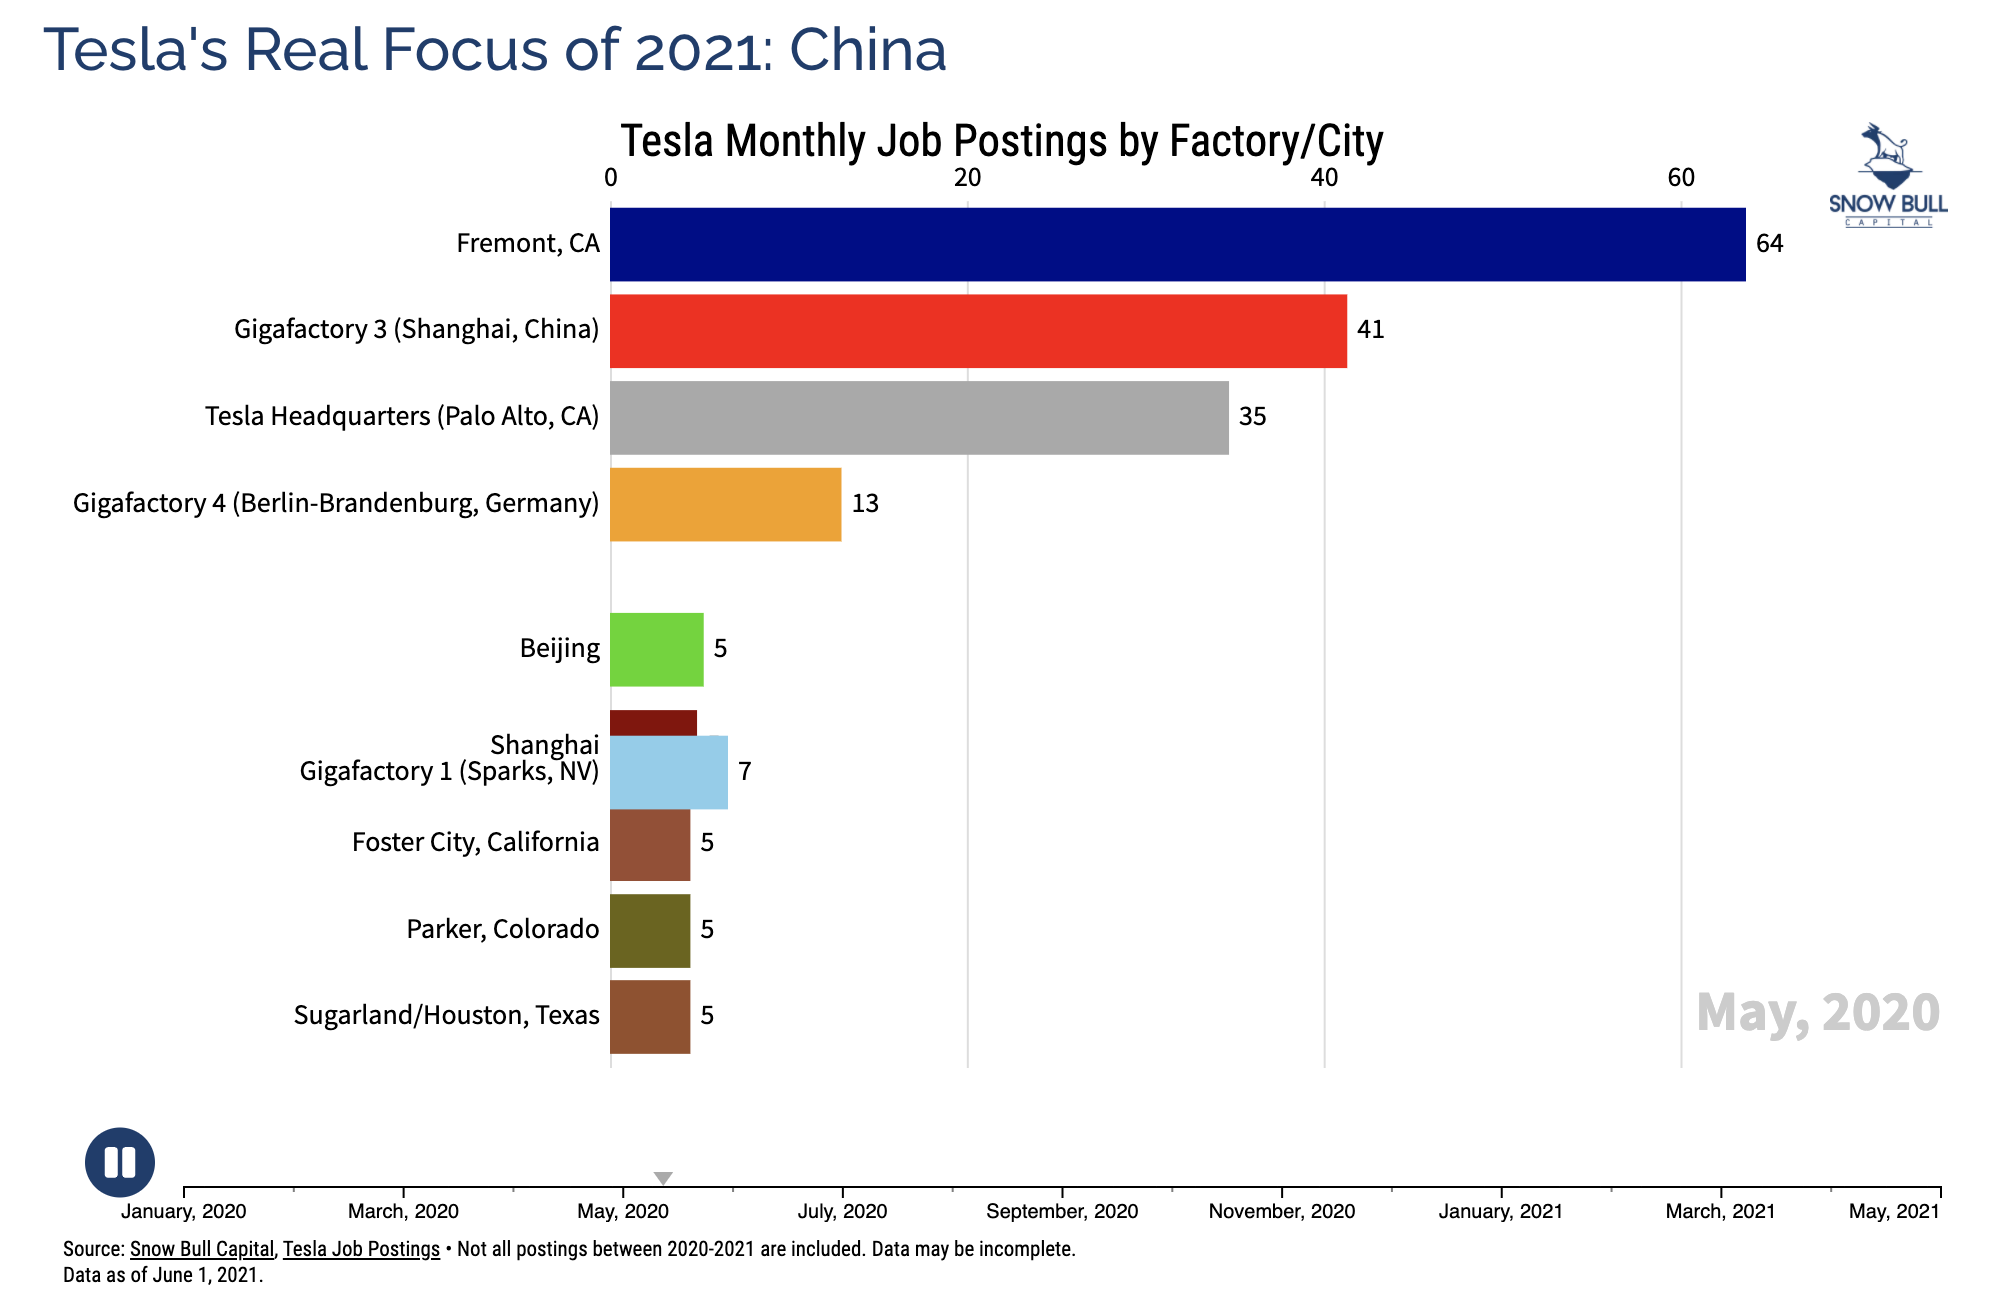 Tesla Jobs Postings by Factory May 2020 Chart courtesy of Snow Bull CleanTechnica